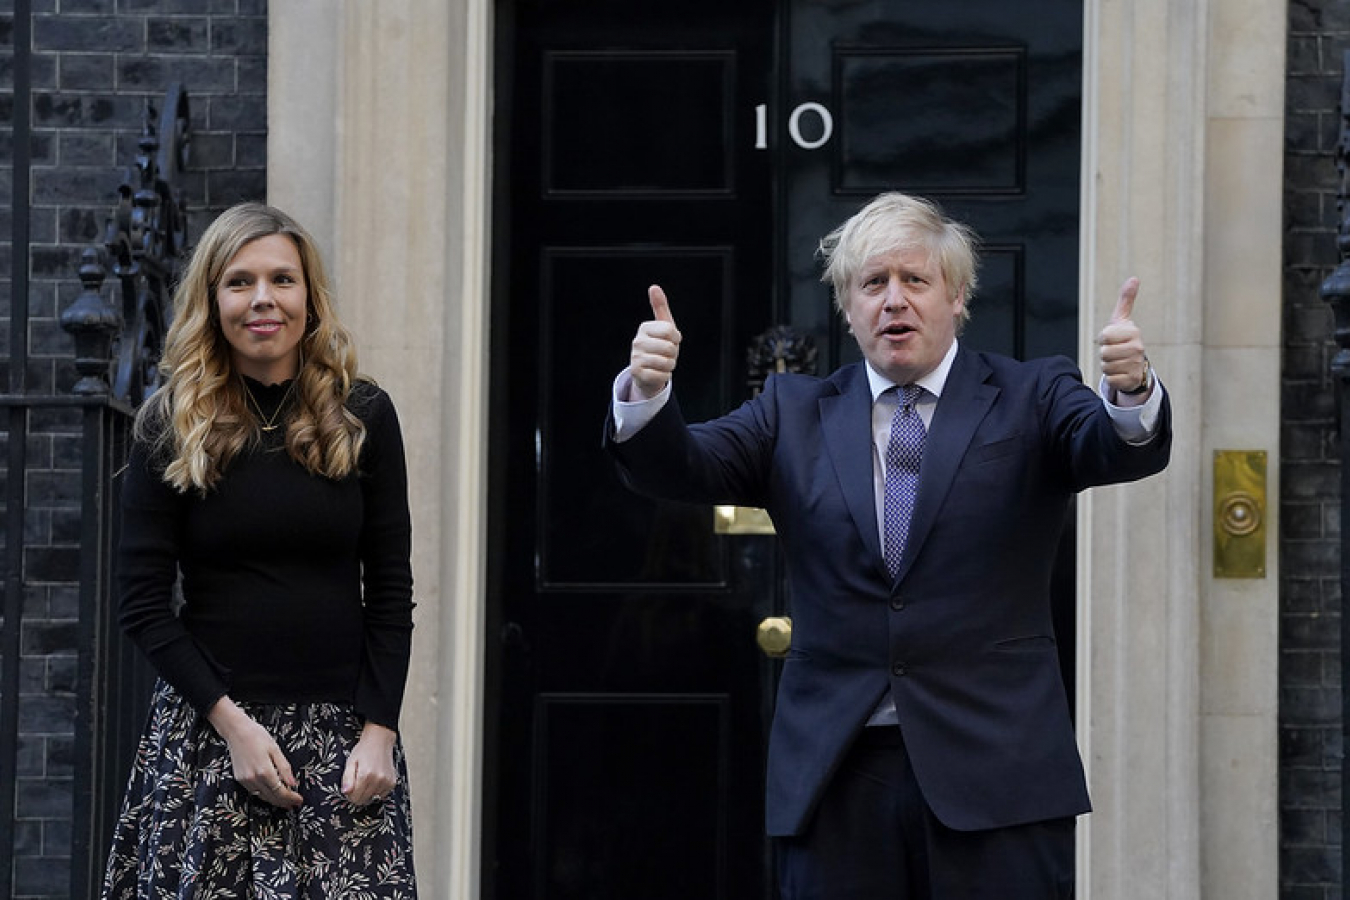 Boris Johnson with partner Carrie Symonds 'Clap for our Carers' 14 May 2020